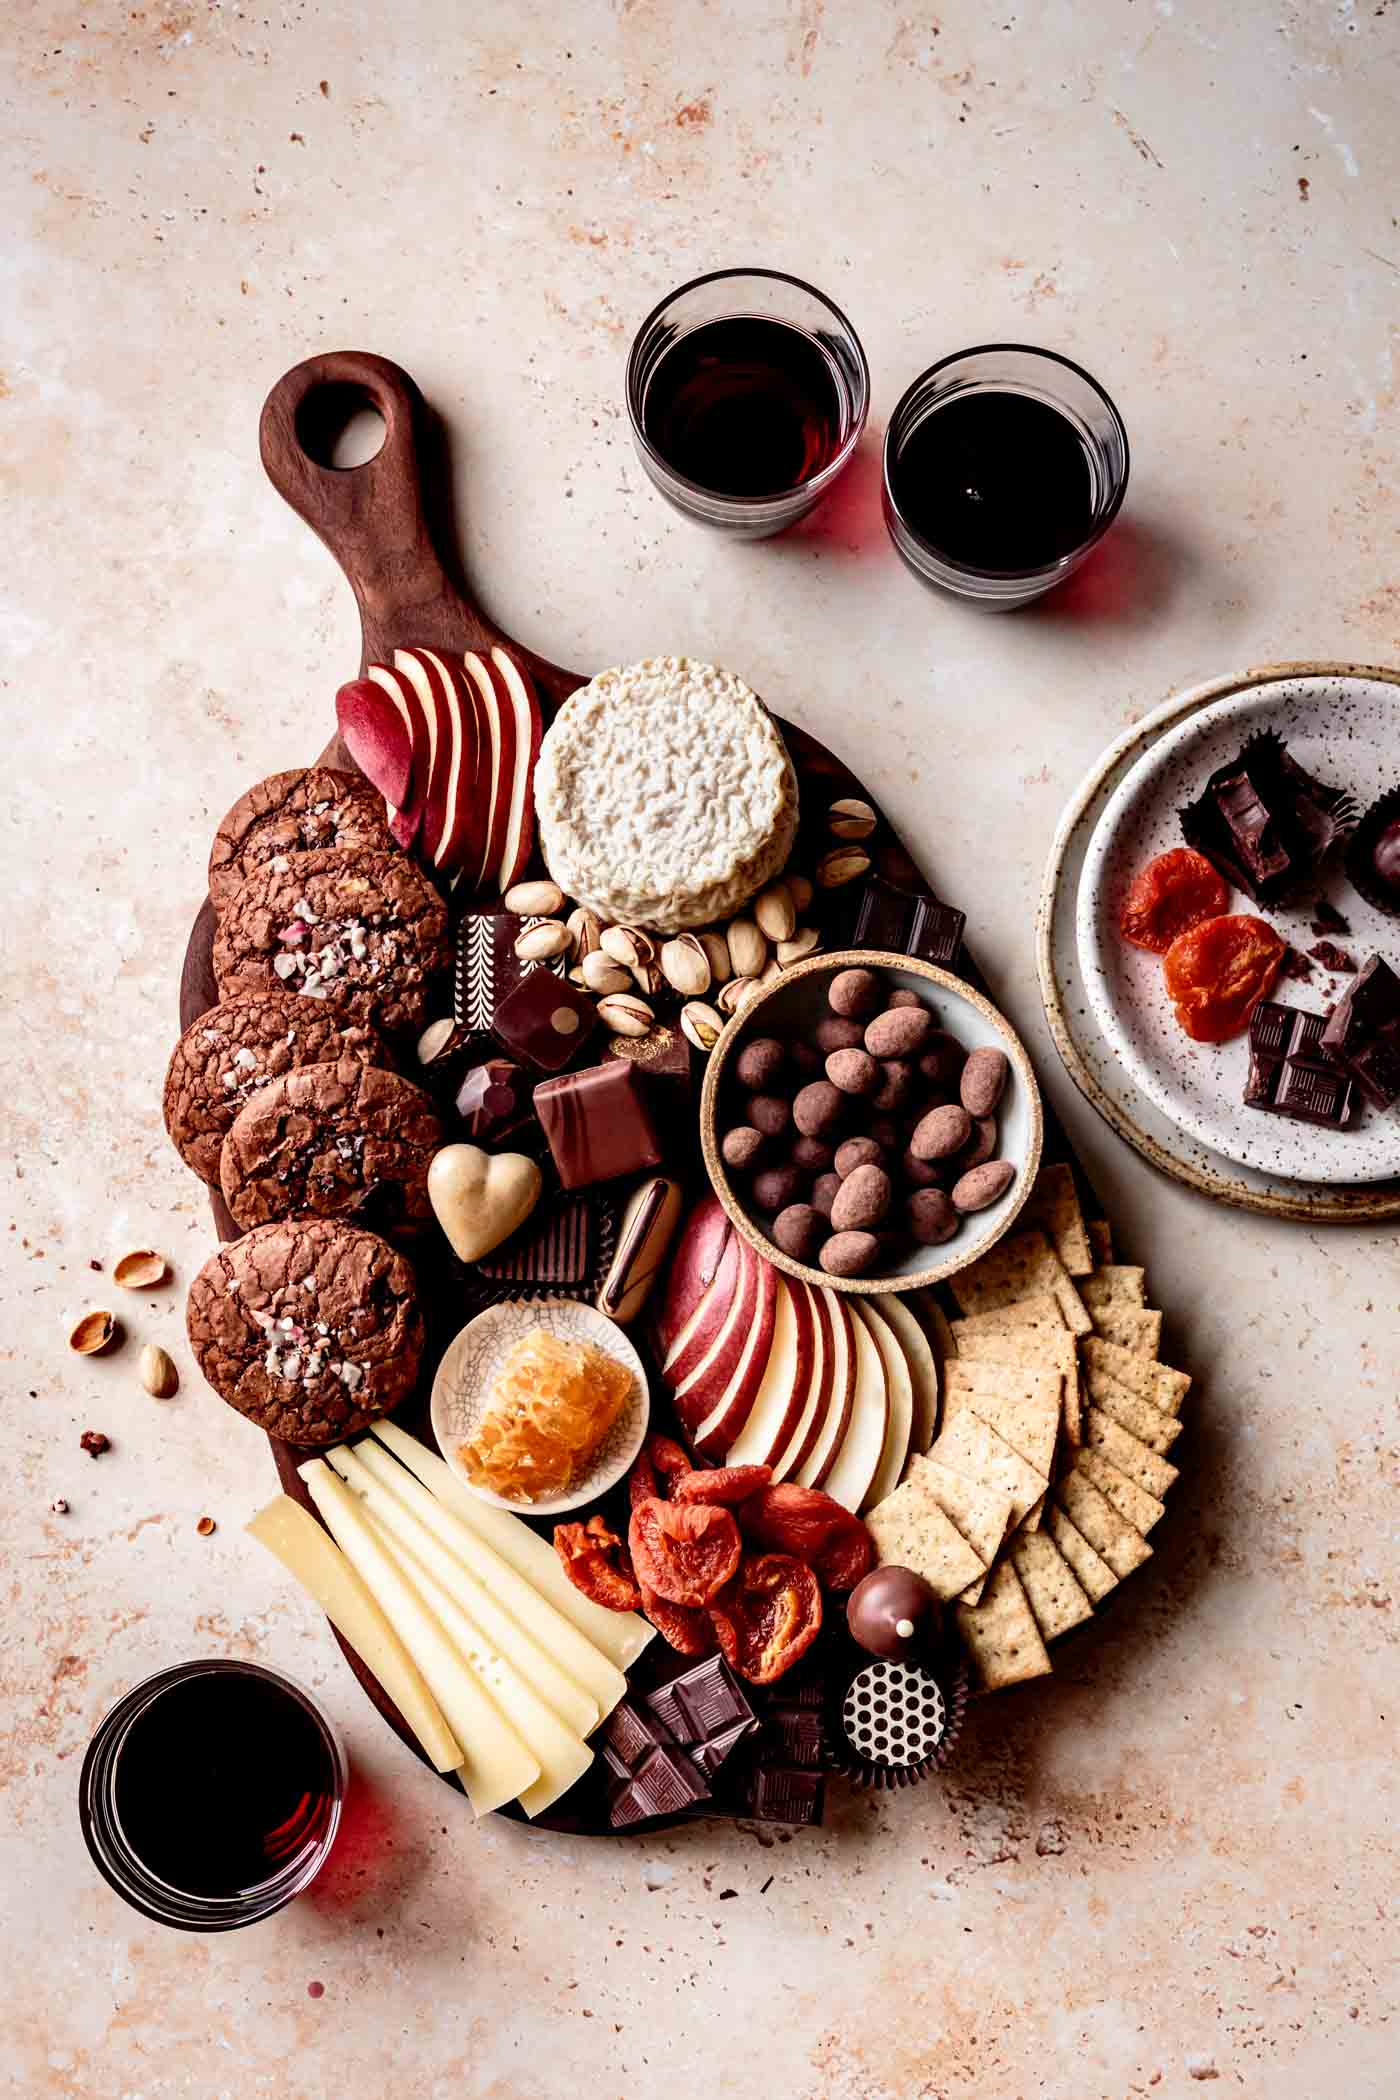 chocolate board overhead with glasses of red wine